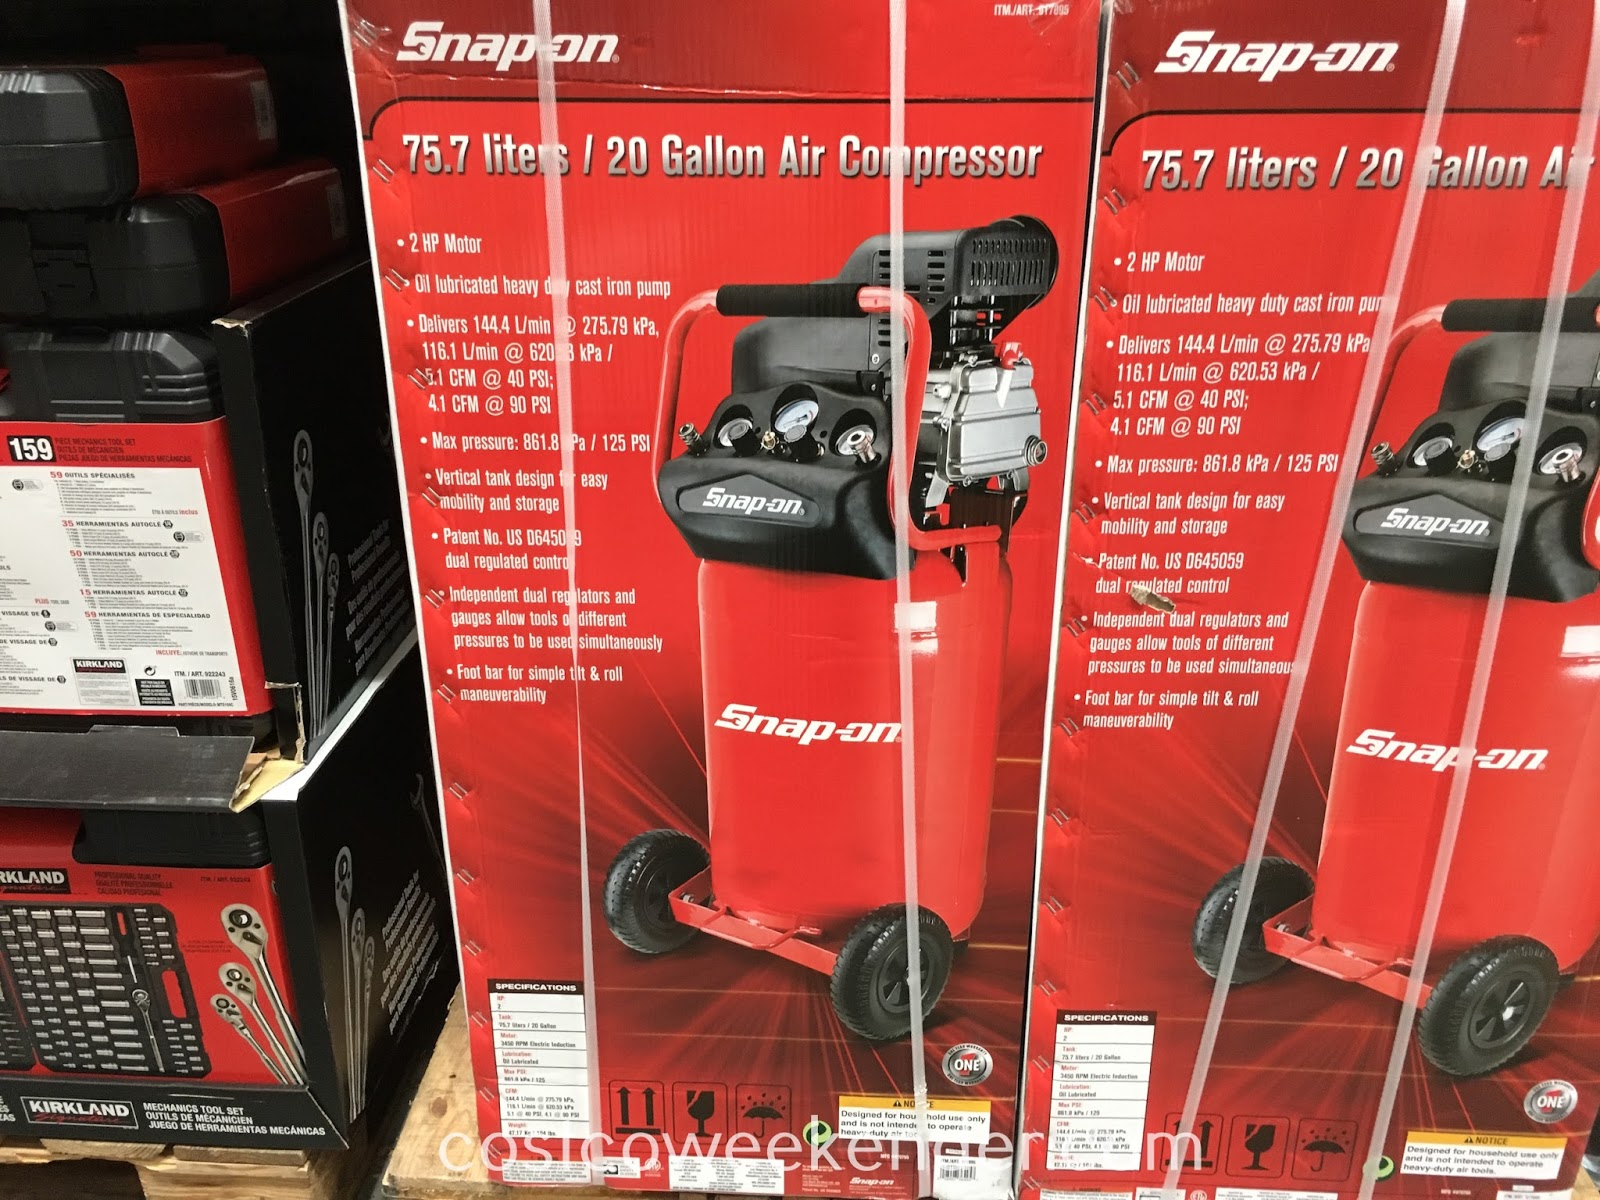 Getting work done around the house is easier with the Snap-On 20 Gallon Air Compressor